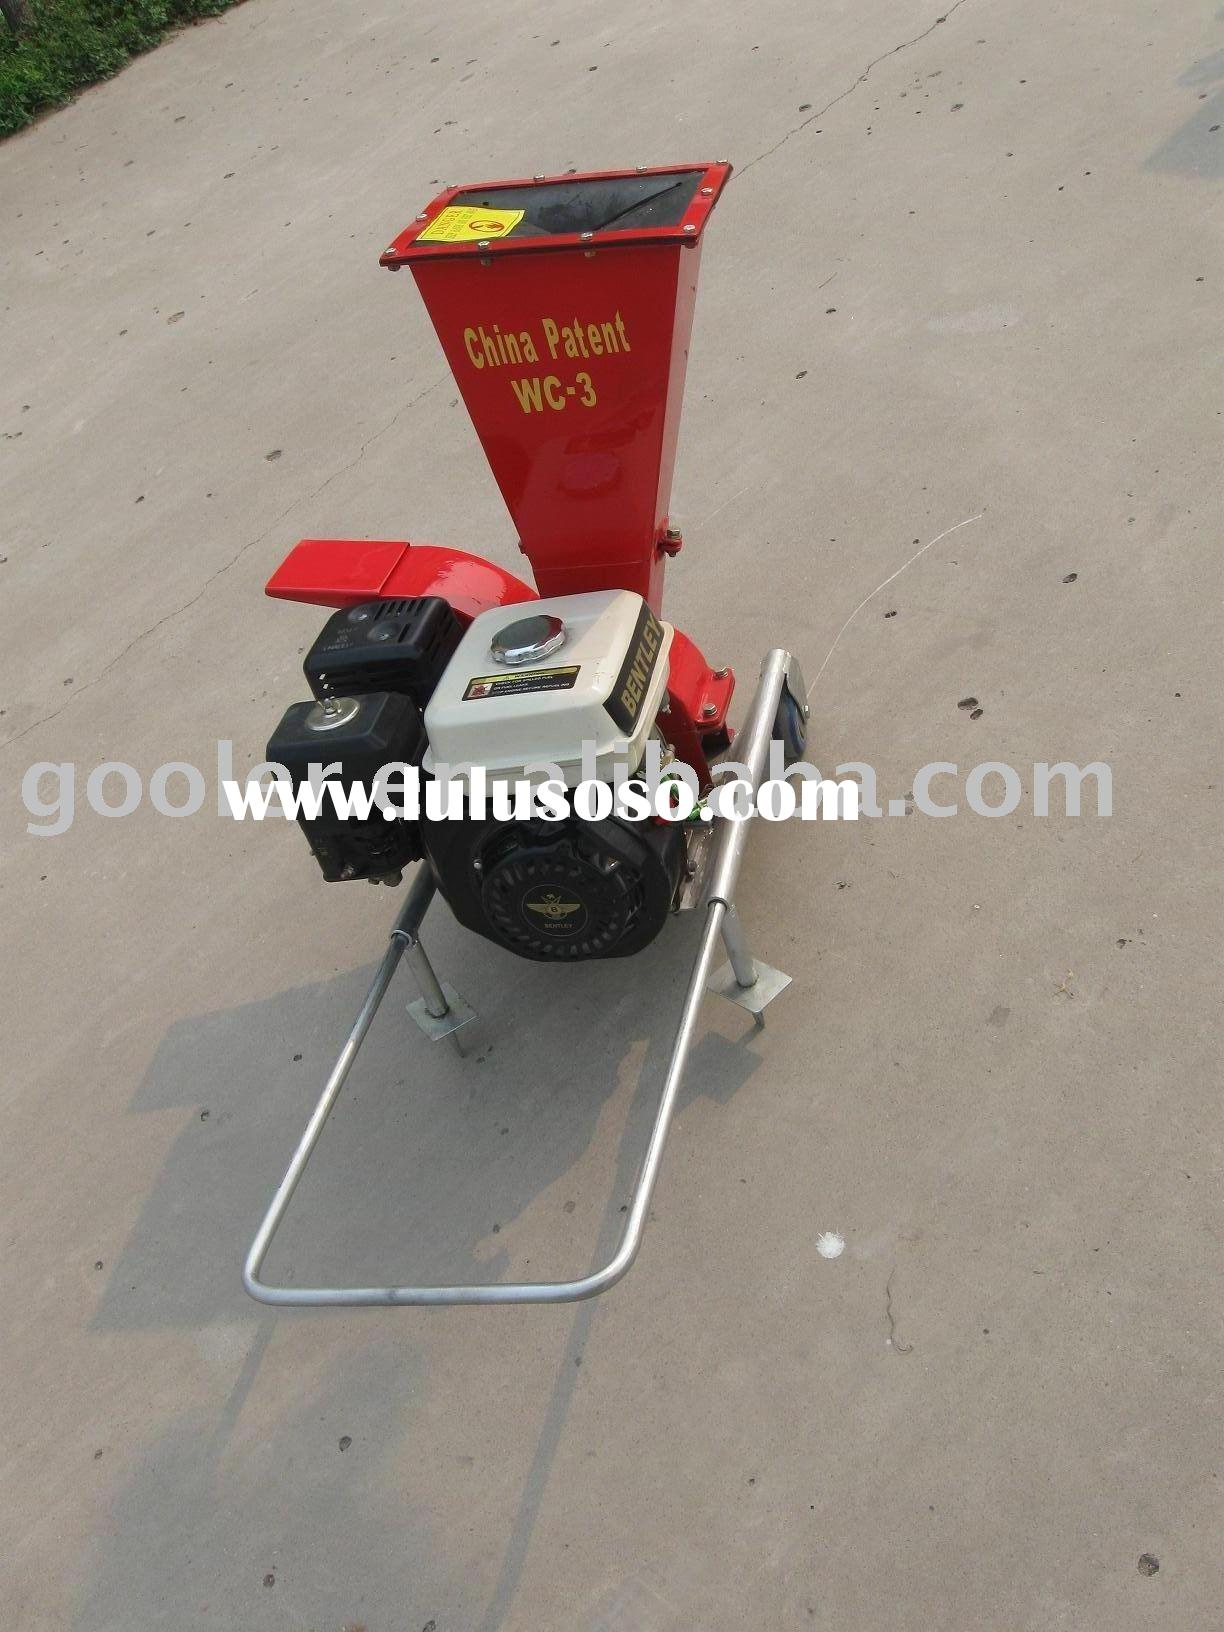 small shredder / chipper with 7HP gasoline engine